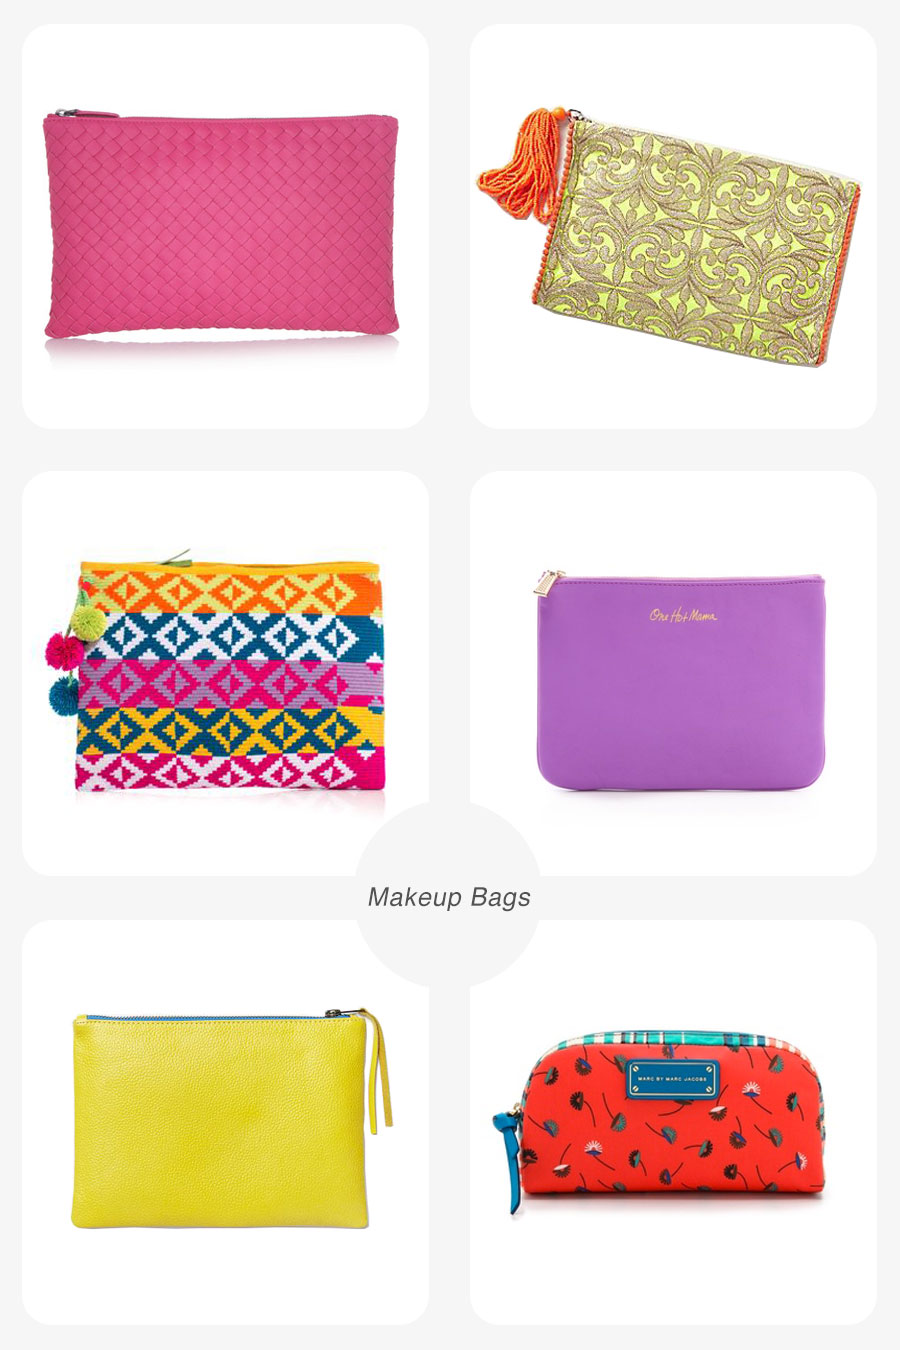 Left to right: Bottega Veneta/ Net-A-Porter ; Solana Clutch/ Anthropologie ; Sophie Anderson Clutch/ Net-A-Porter ; Rebecca Minkoff/ Shopbop ; Leather Zipper Case/ West Elm ; Marc by Marc Jacobs/ Shopbop